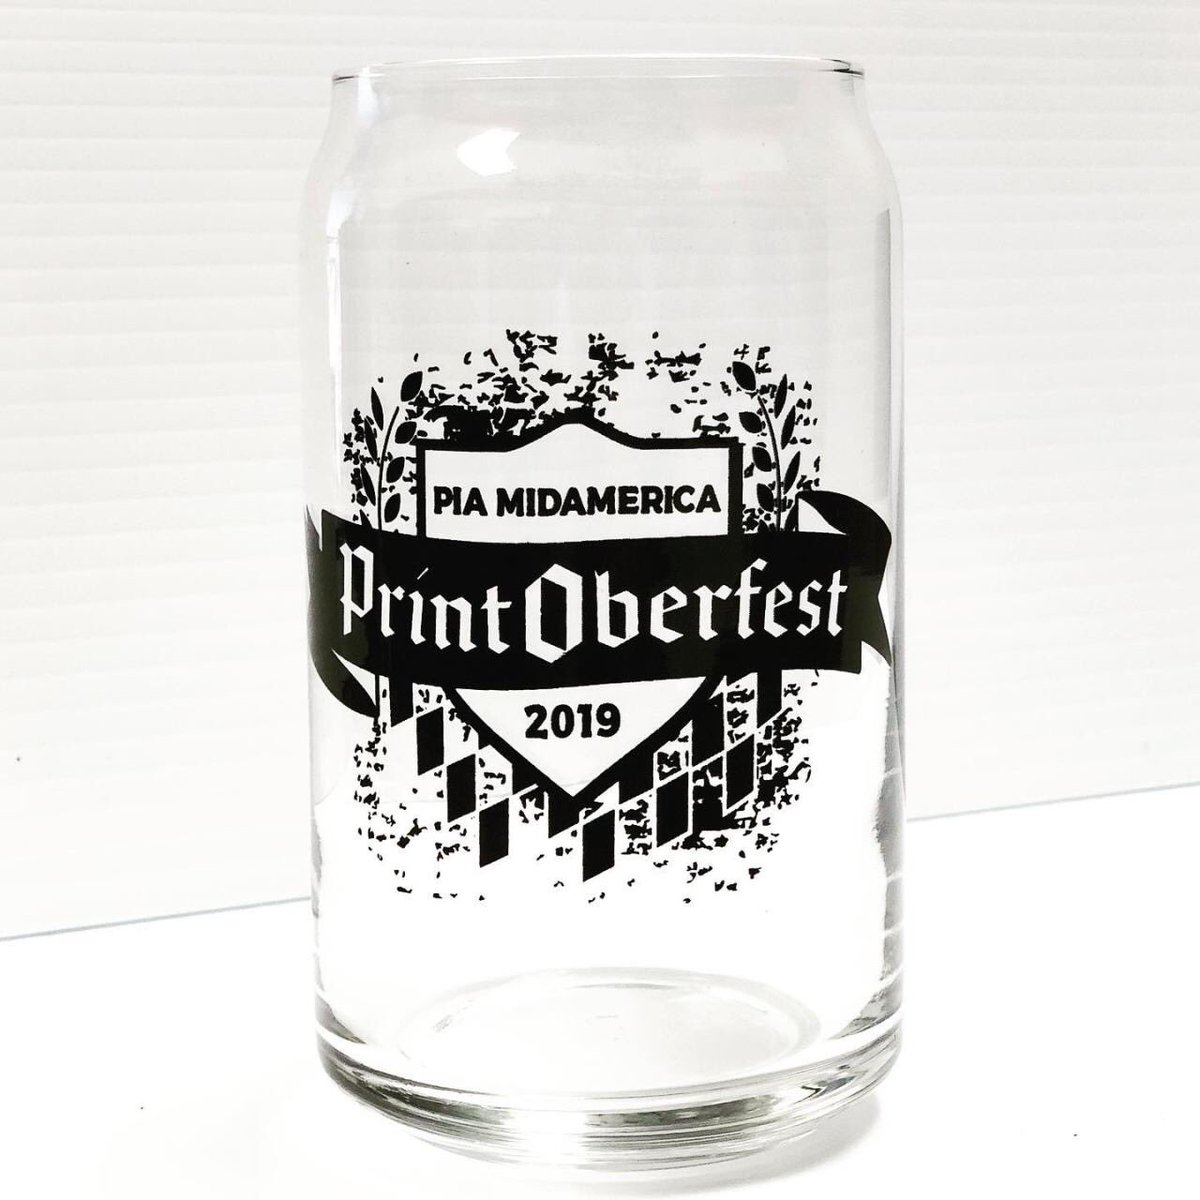 Will see you if I can get over there in time!!!! YayAa #printingunited #printobervest